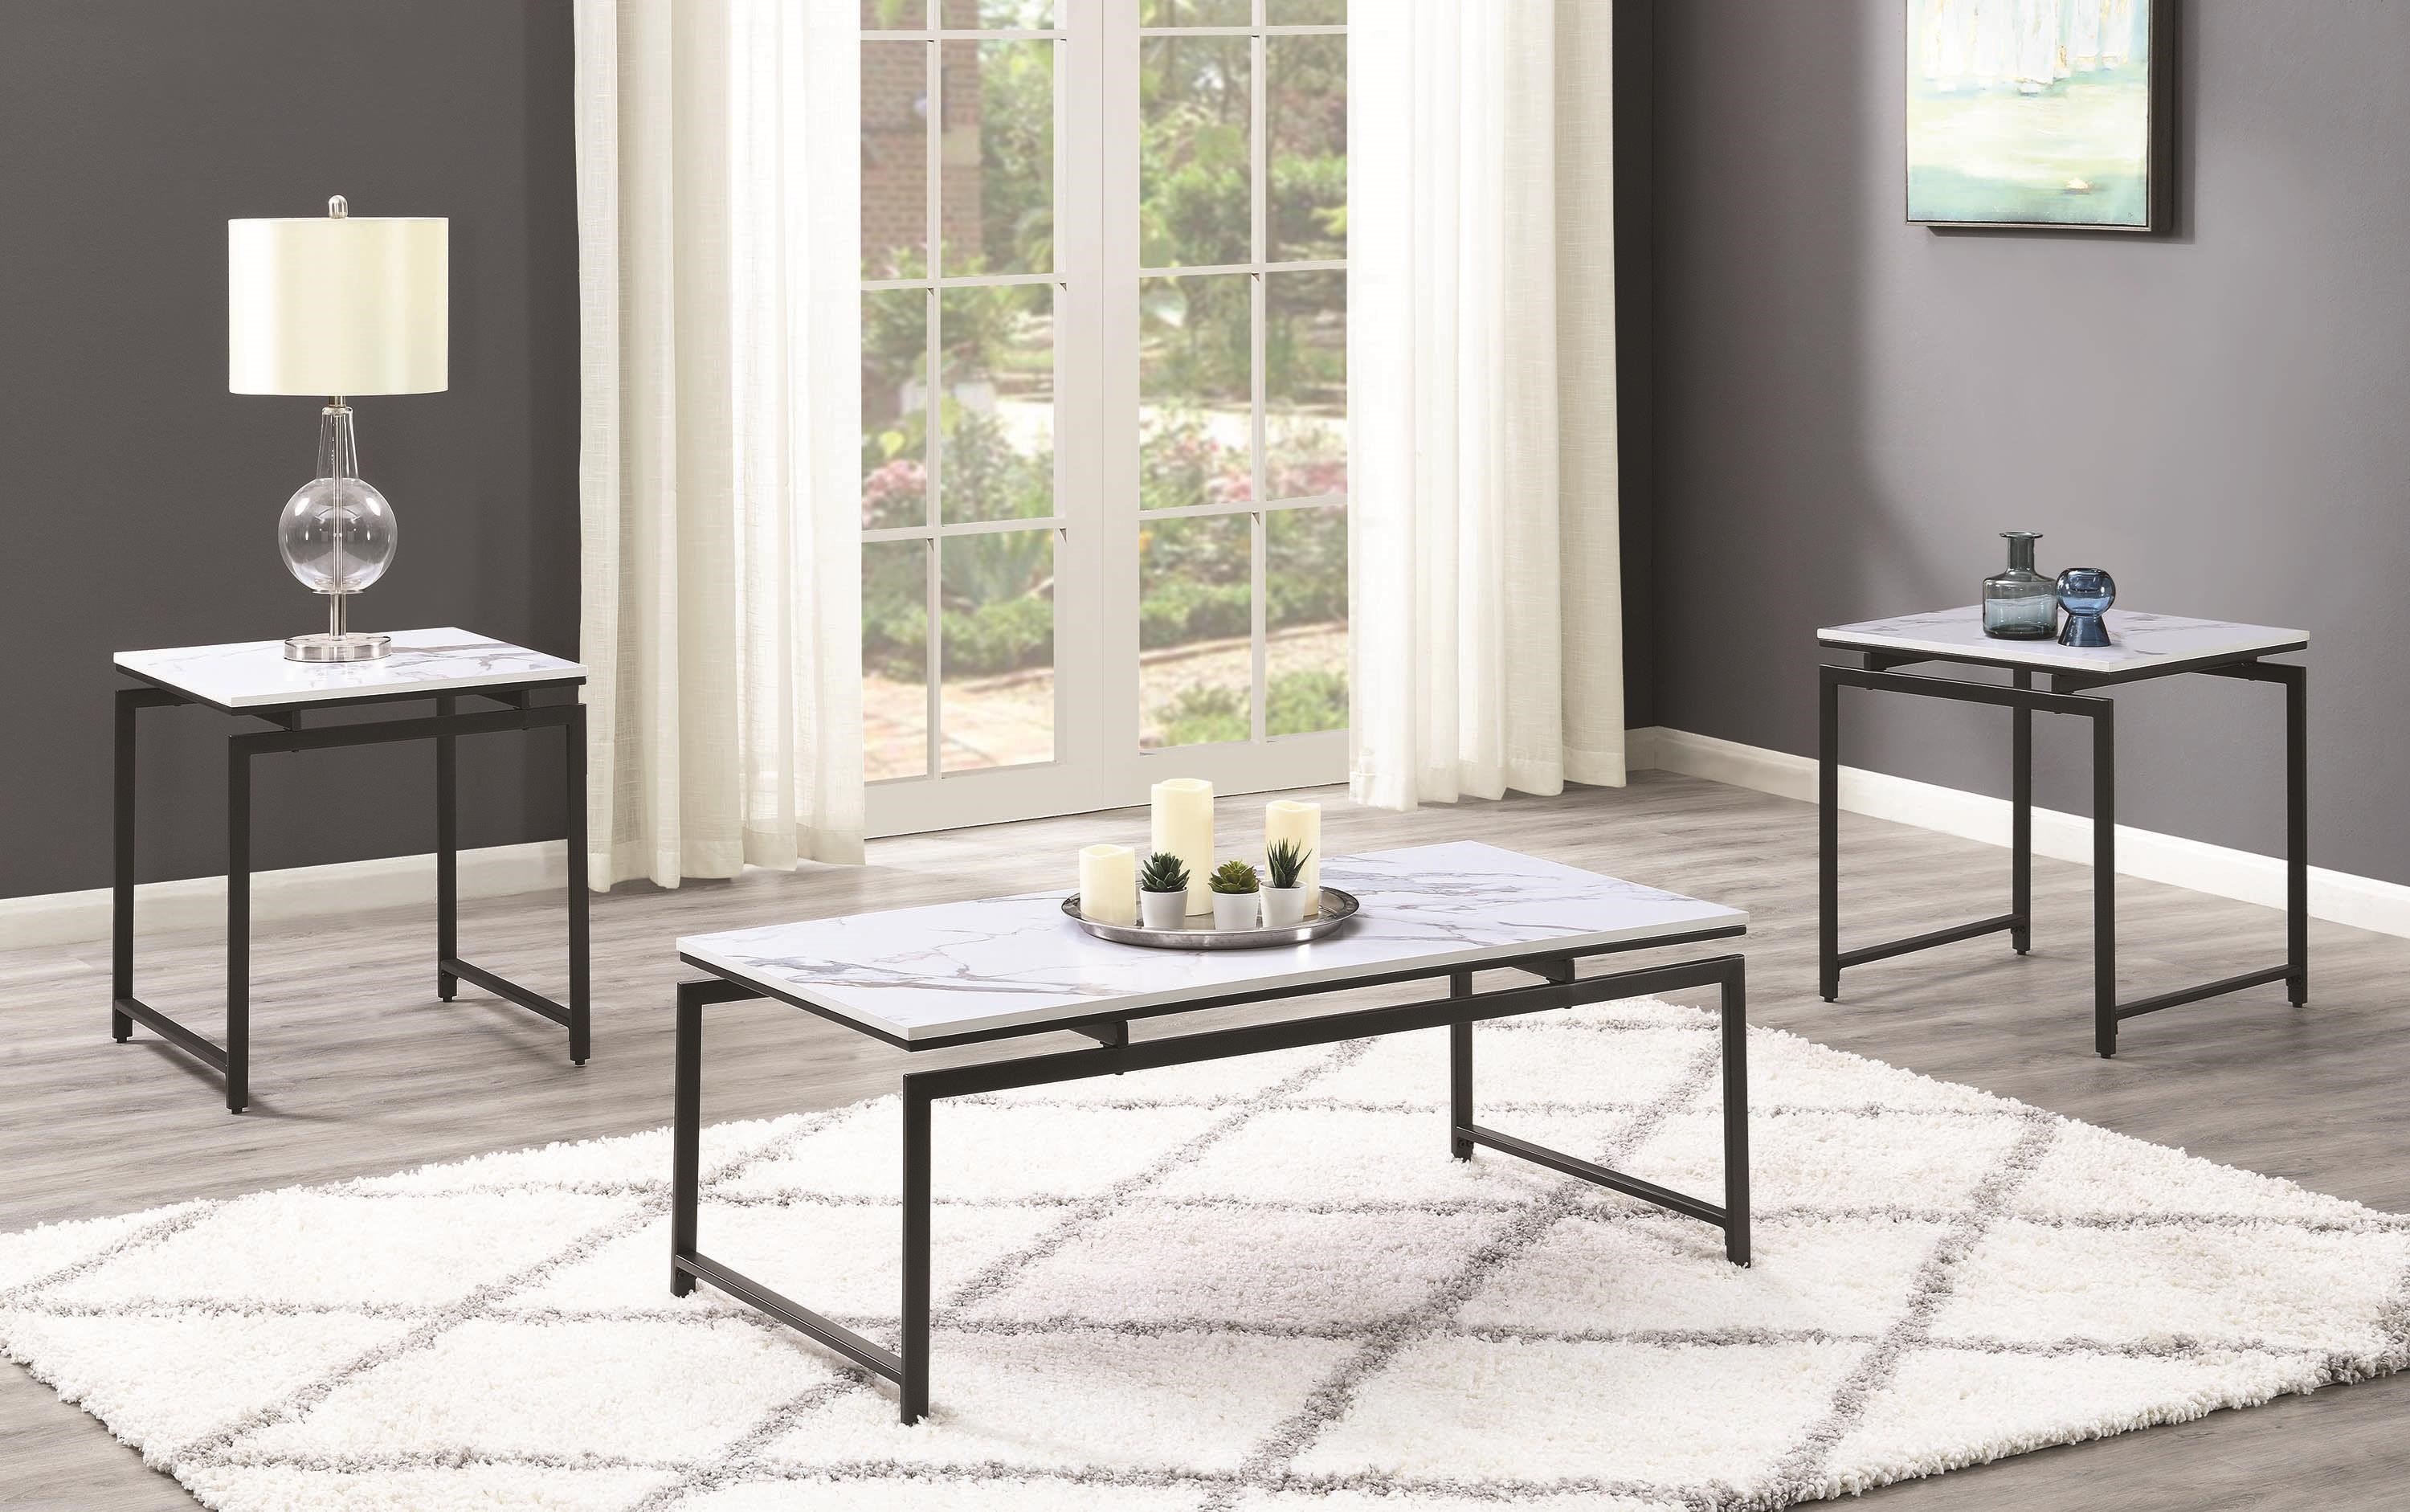 Essence 3 Piece Occasional Set by Coaster at HomeWorld Furniture